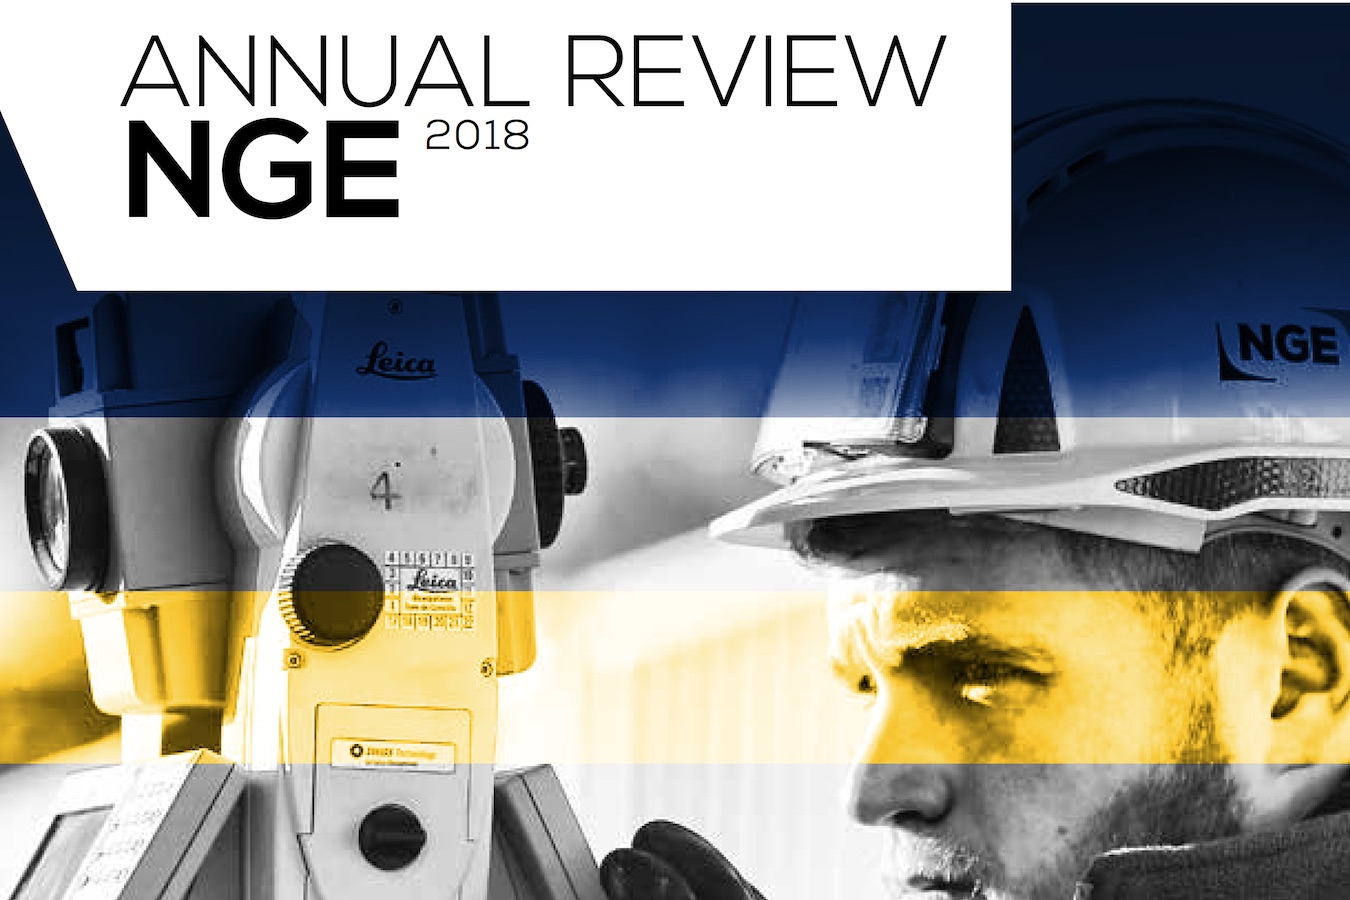 Annual Report NGE 2018